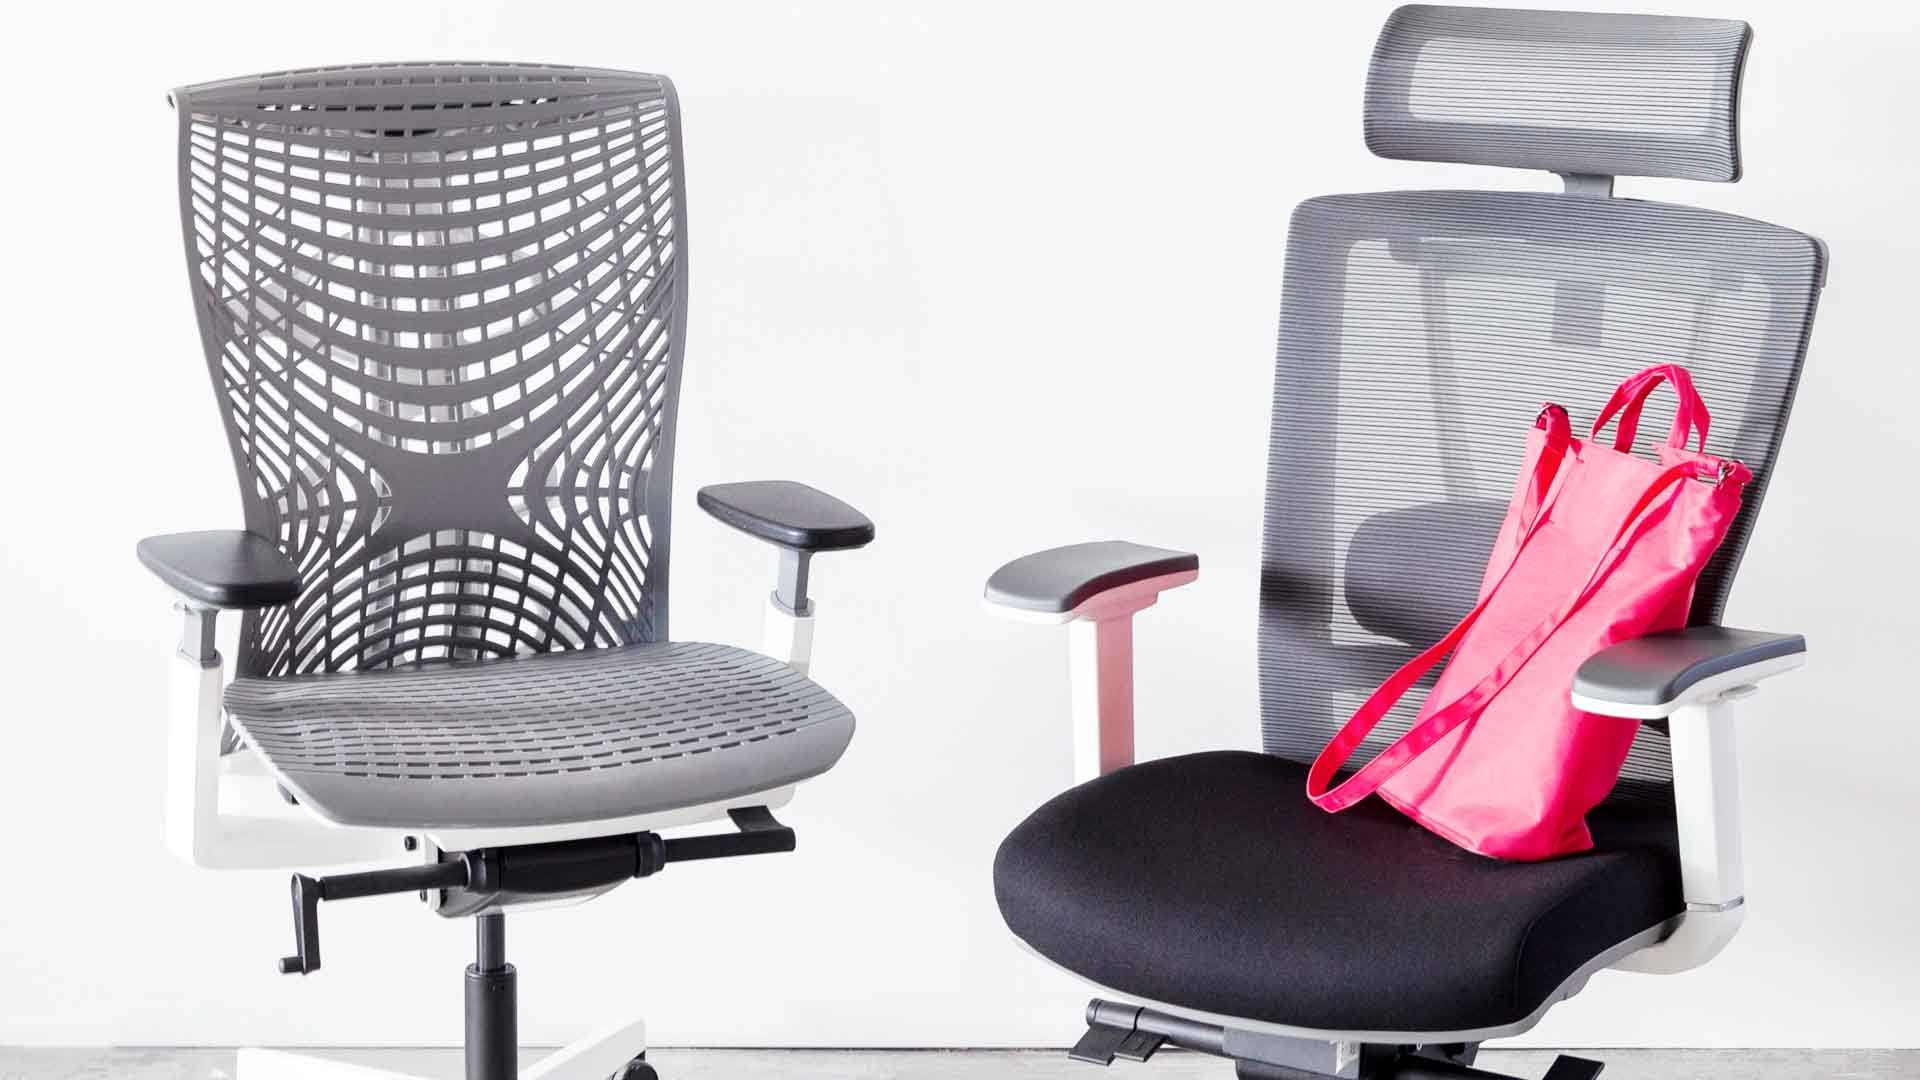 Why Should You Invest in an Autonomous Chair?